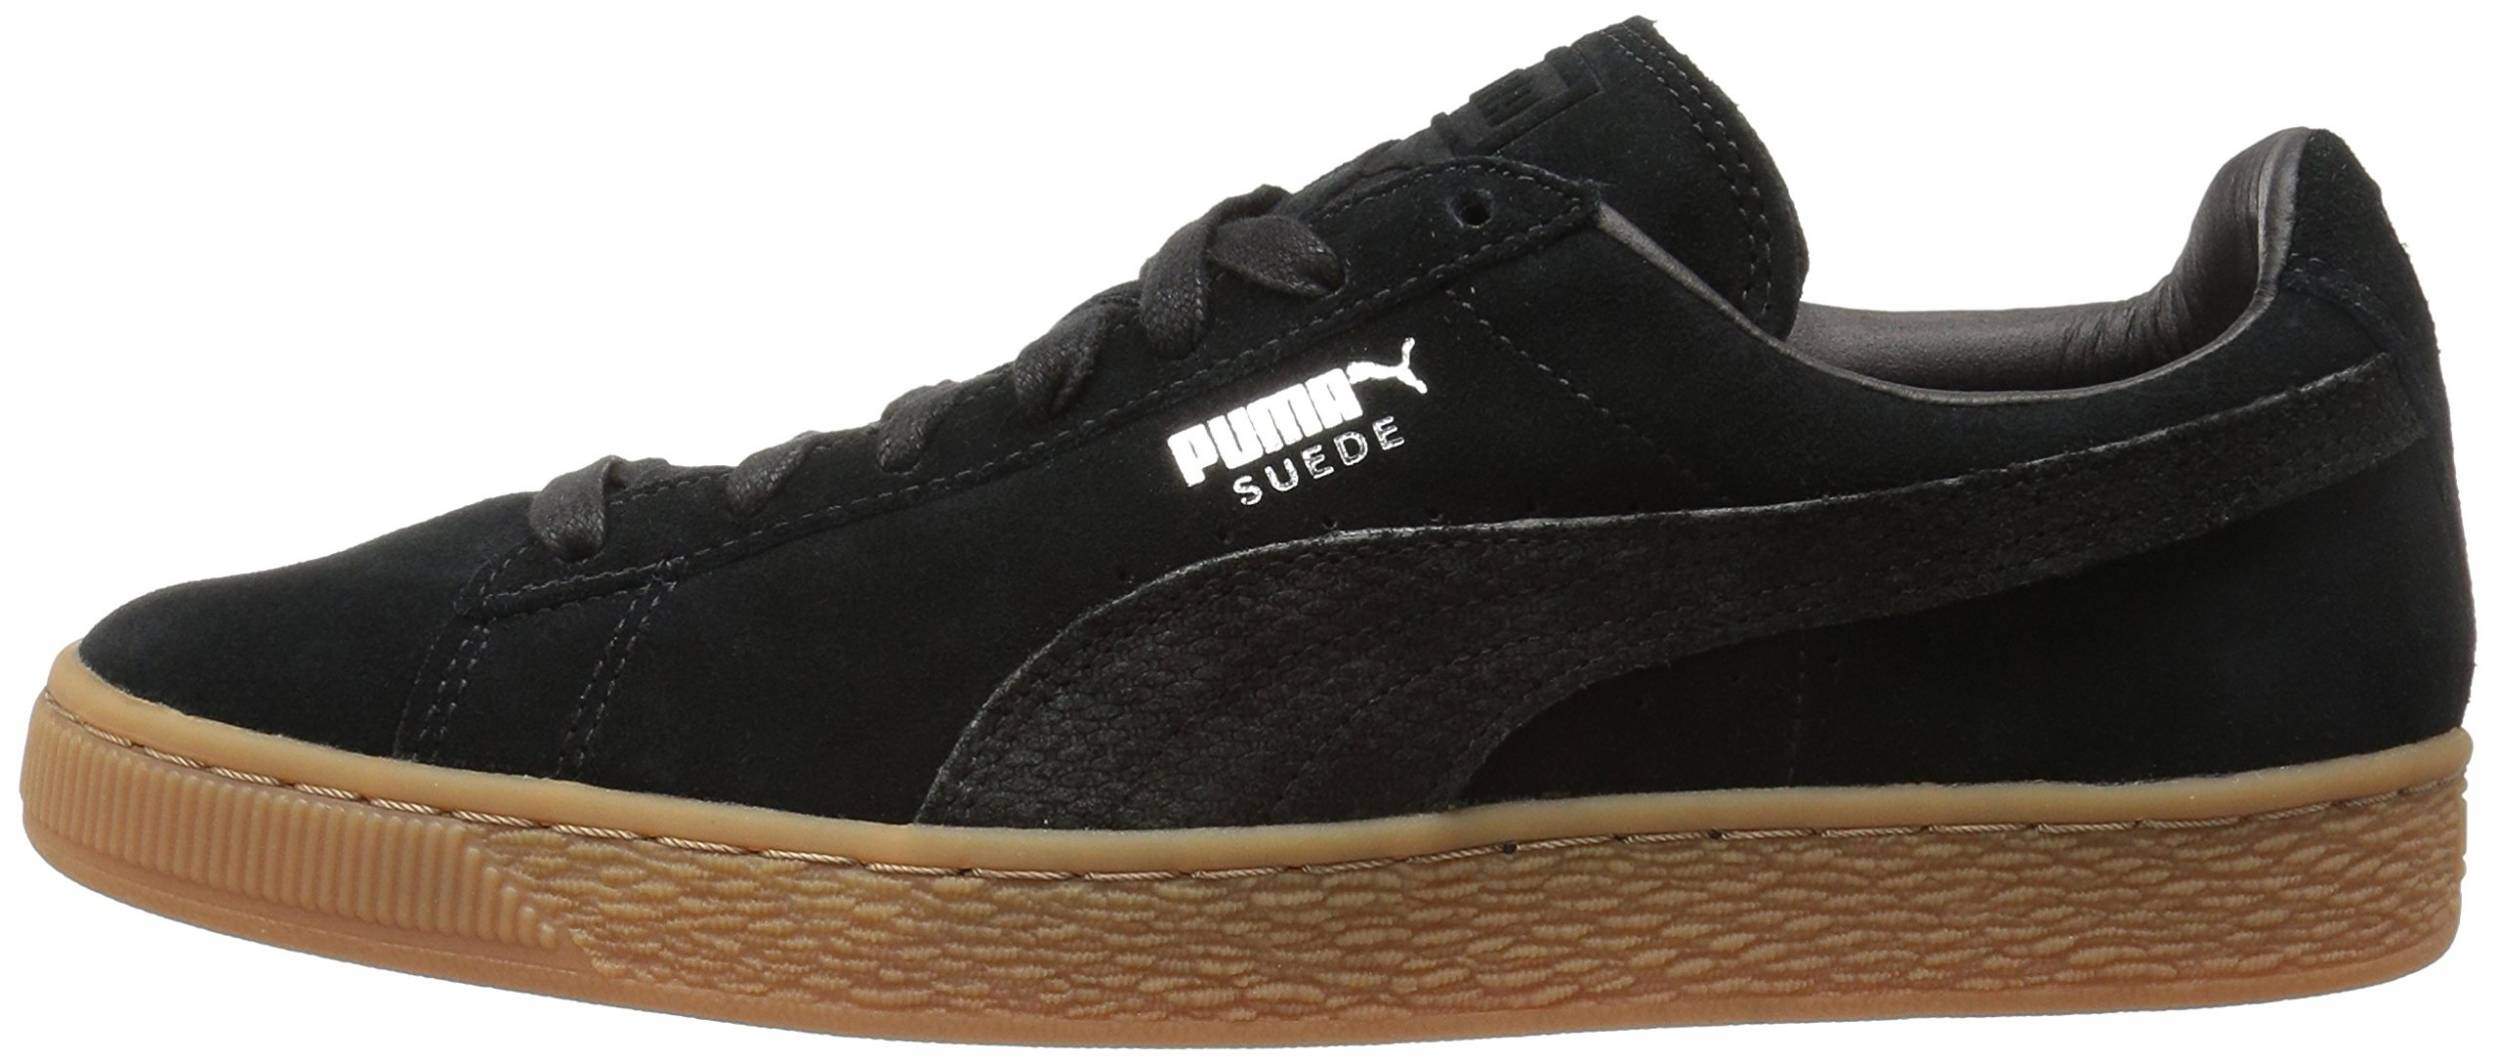 11 Reasons to/NOT to Buy Puma Suede Classic Citi (Sep 2021 ...